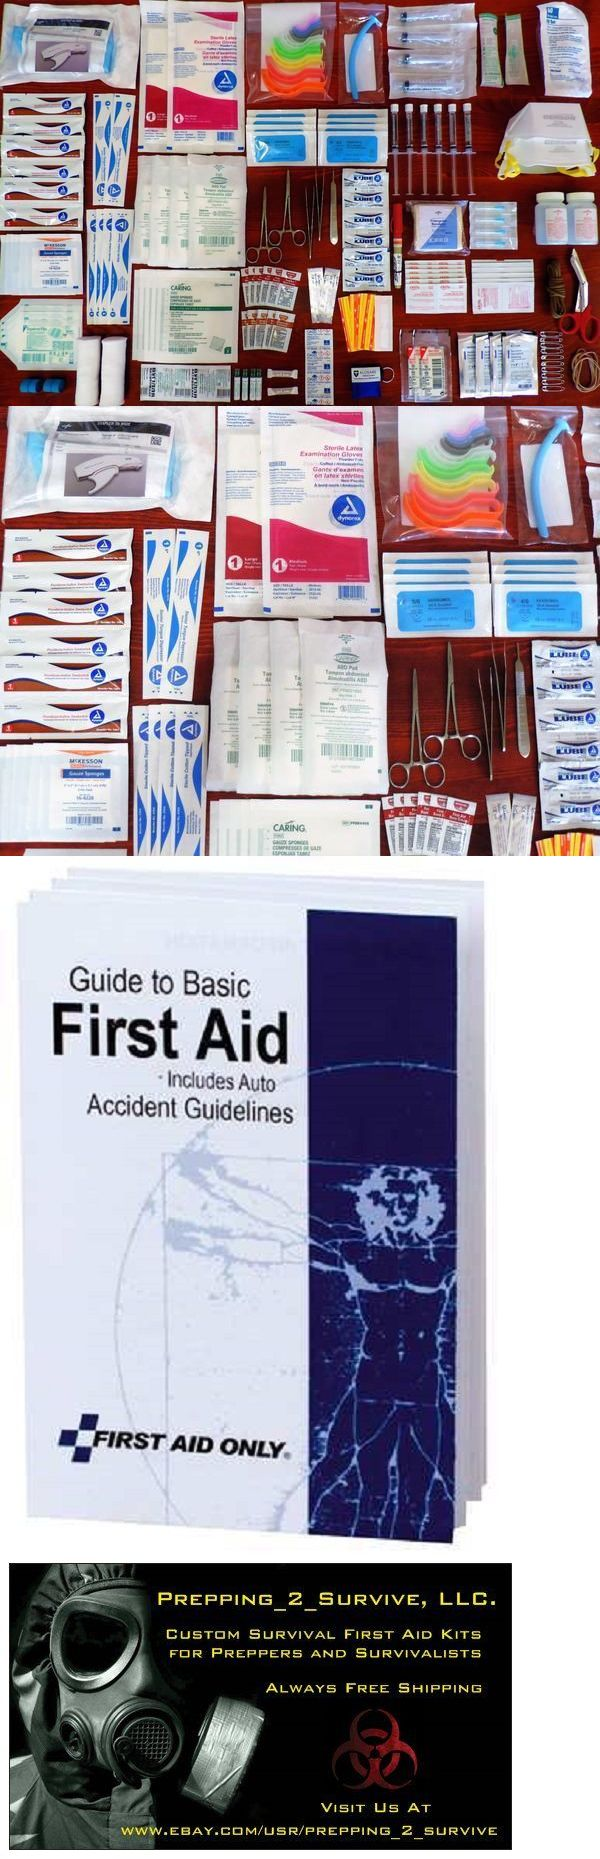 Other Emergency Gear 181415: Surgical Tactical Survival First Aid Kit Suture Set Skin Stapler Medical Outdoor -> BUY IT NOW ONLY: $118.75 on eBay!